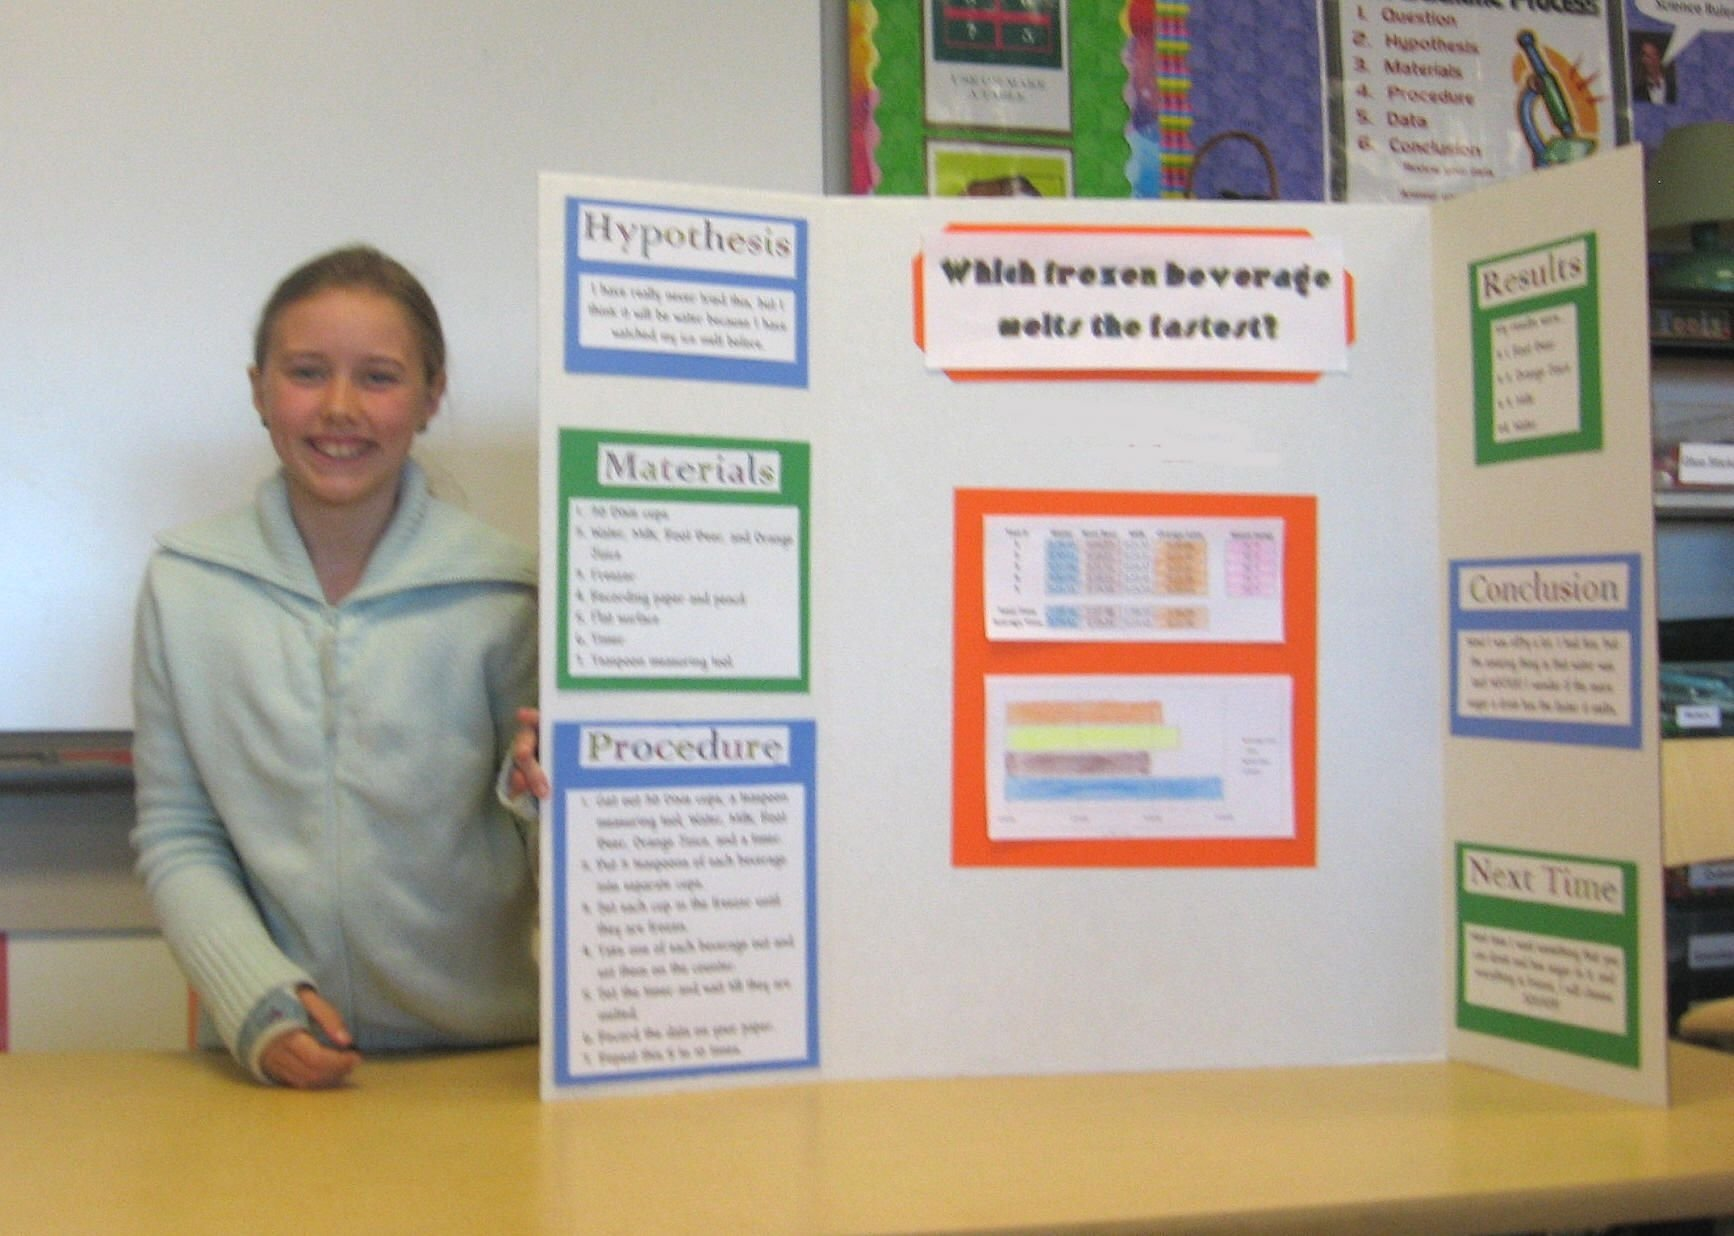 10 Best Science Project Ideas 4Th Grade great science fair project ideaswhich popsicle melts the fastest 17